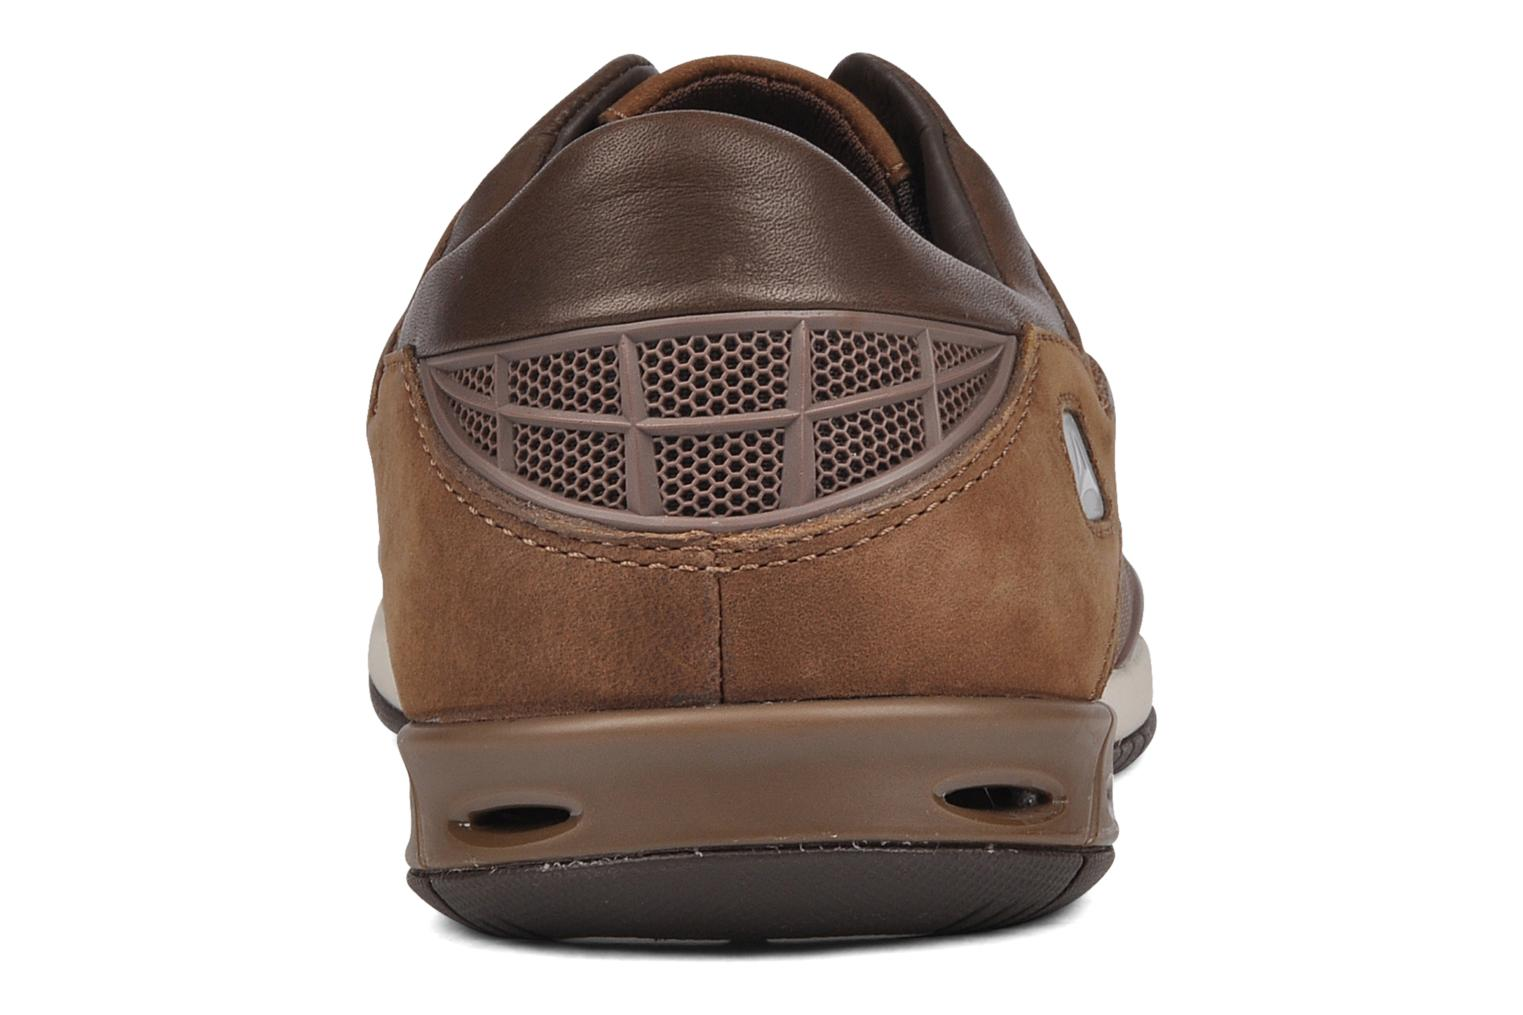 Orson lace Brown leather